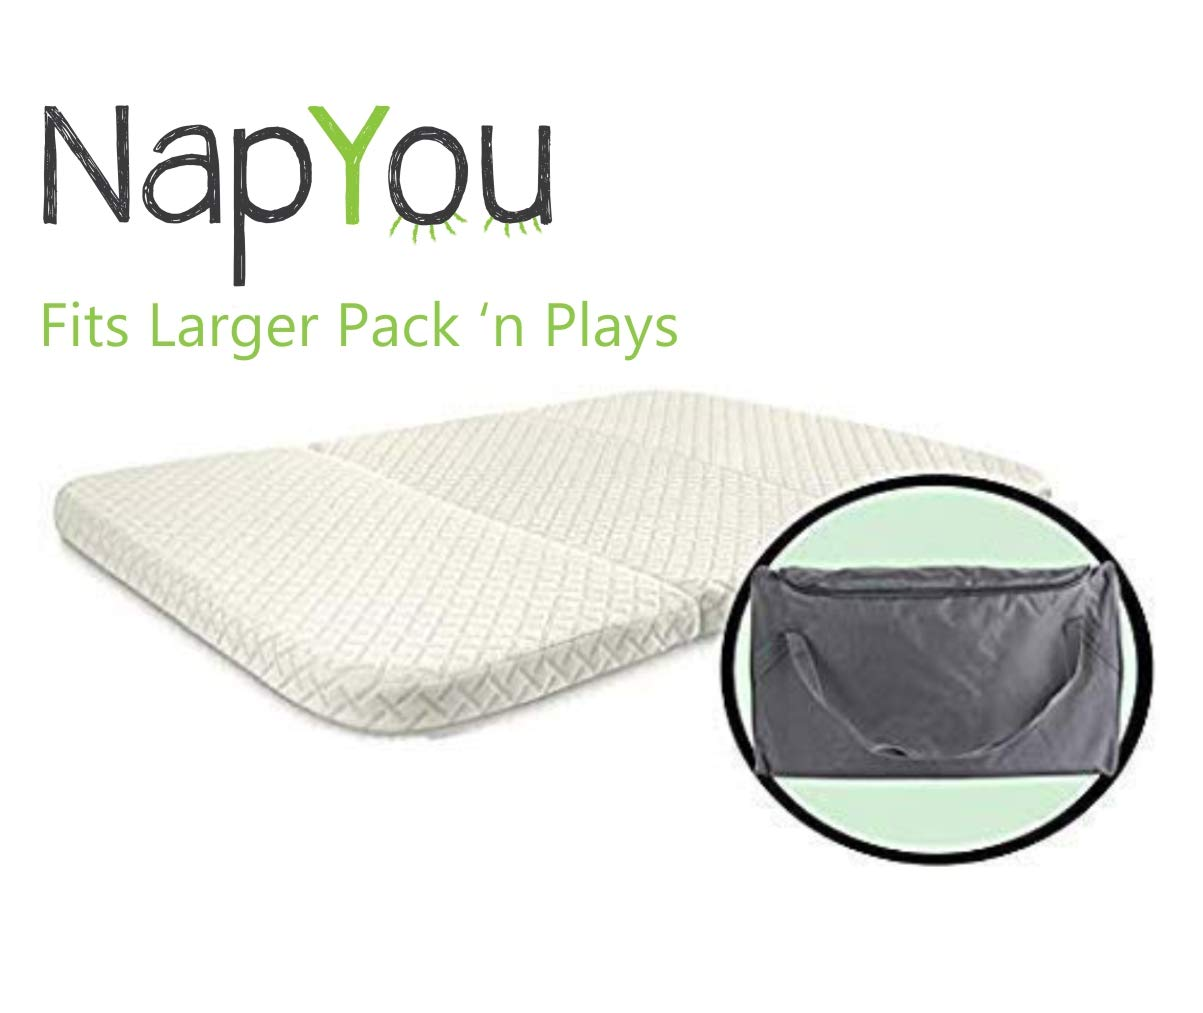 NapYou Amazon Exclusive Pack n Play Mattress, Convenient Fold with Bonus Easy Handle Carry Bag - Large Size 28 inches x 40 inches by NapYou